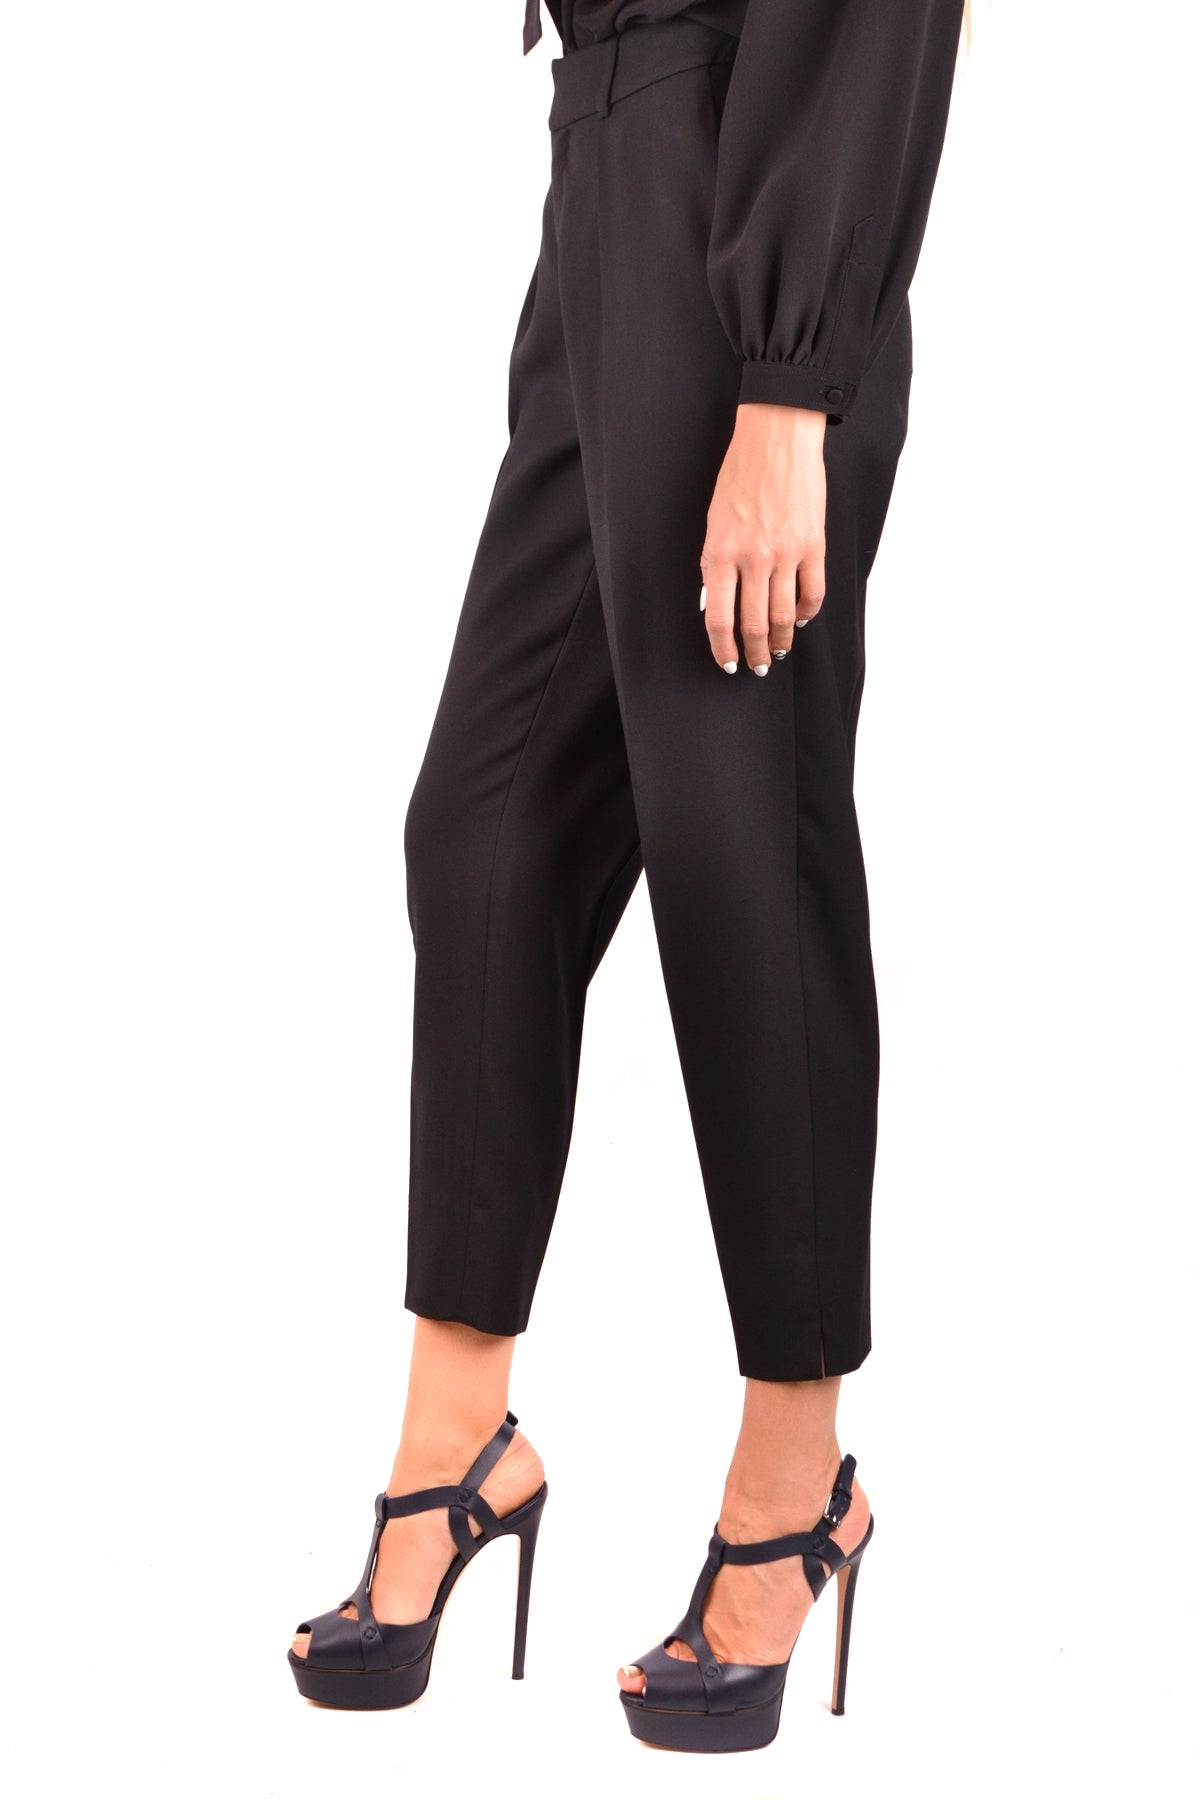 Trousers Saint Laurent-Trousers - WOMAN-36-Keyomi-Sook